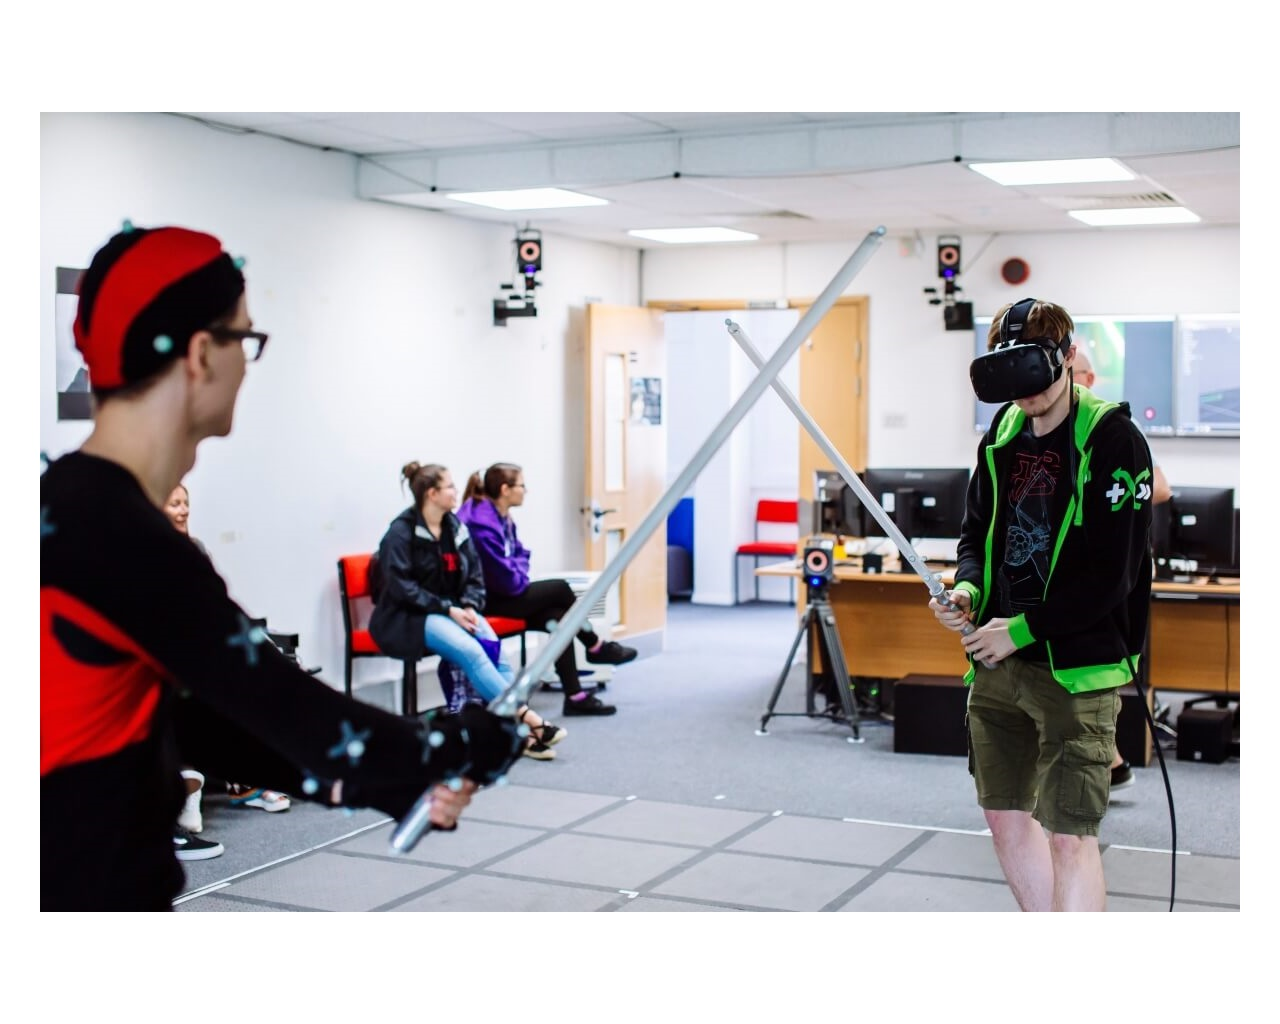 Two students using light sabres in virtual reality lab